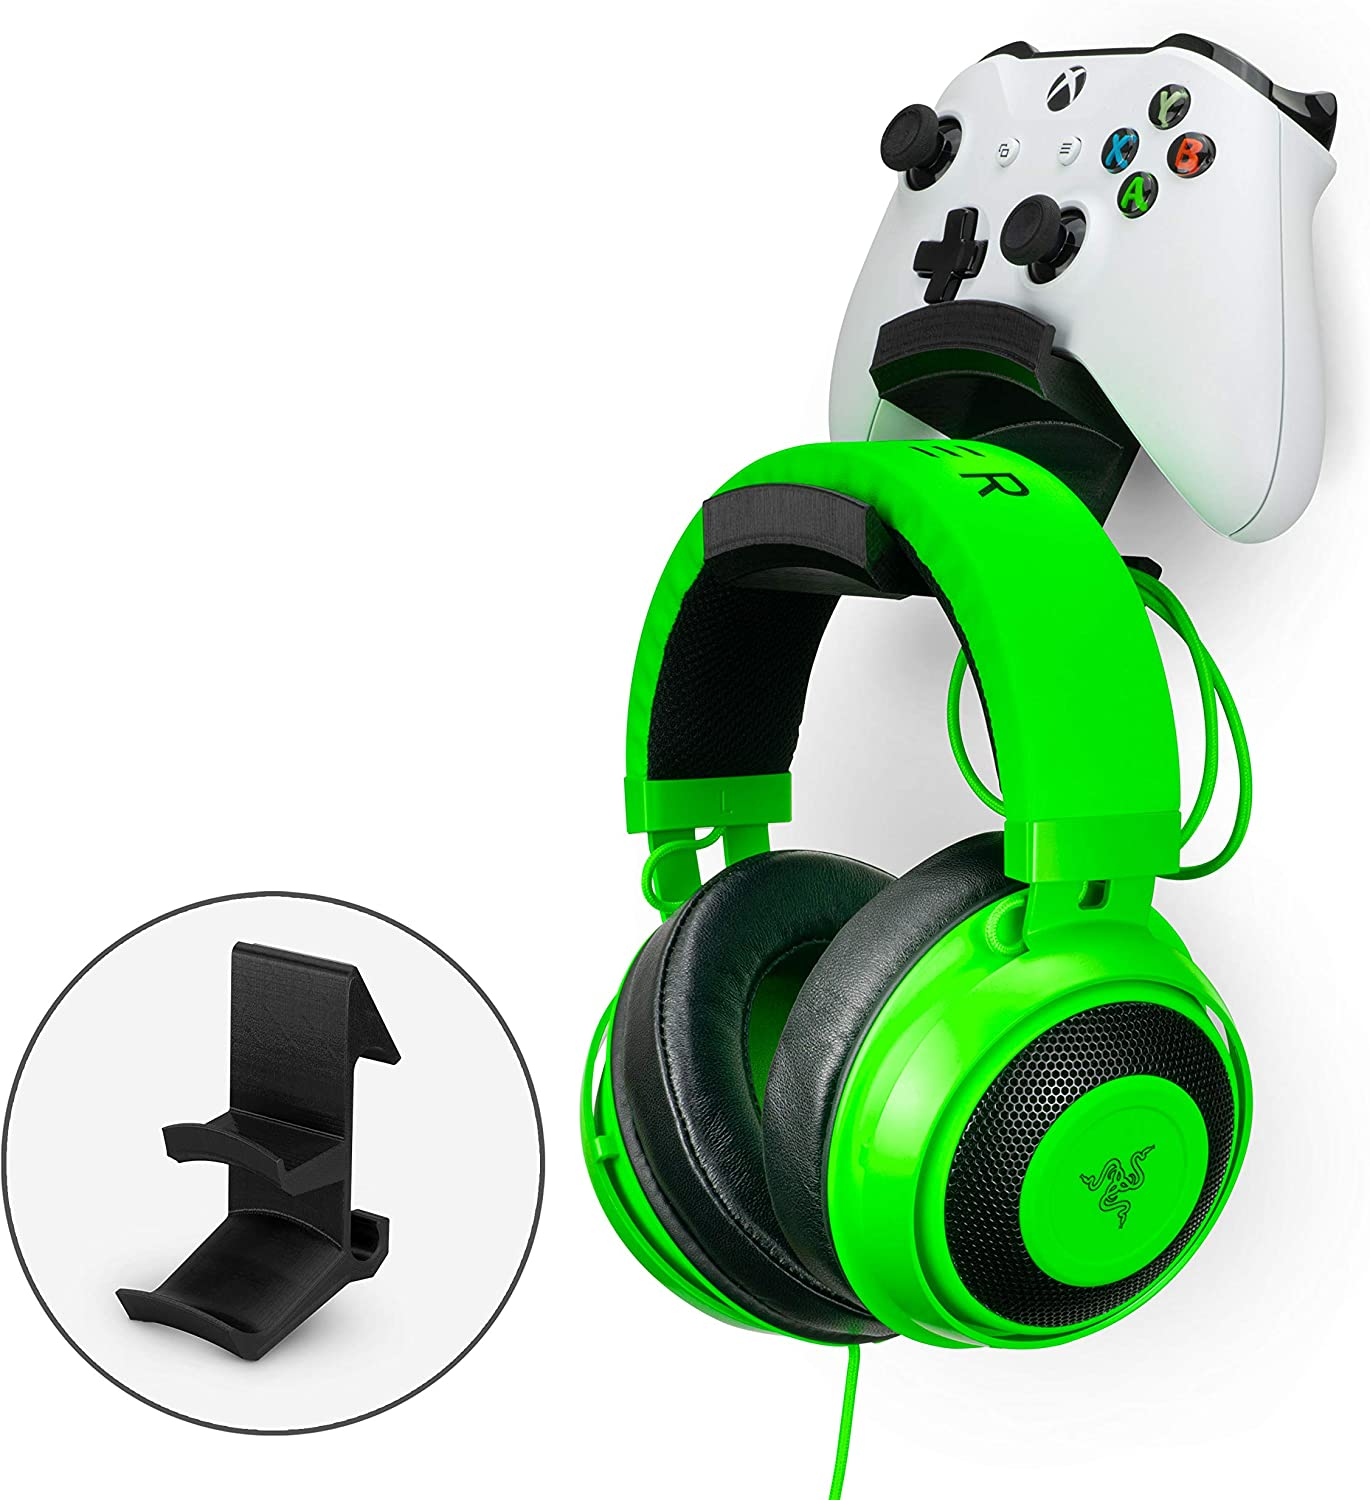 The Colossus - Gamepad Controller & Headphone Hanger Holder - Designed for Xbox ONE, PS4, PS3, Dualshock, Switch, PC, Steelseries, Steam & More by Brainwavz (Black)